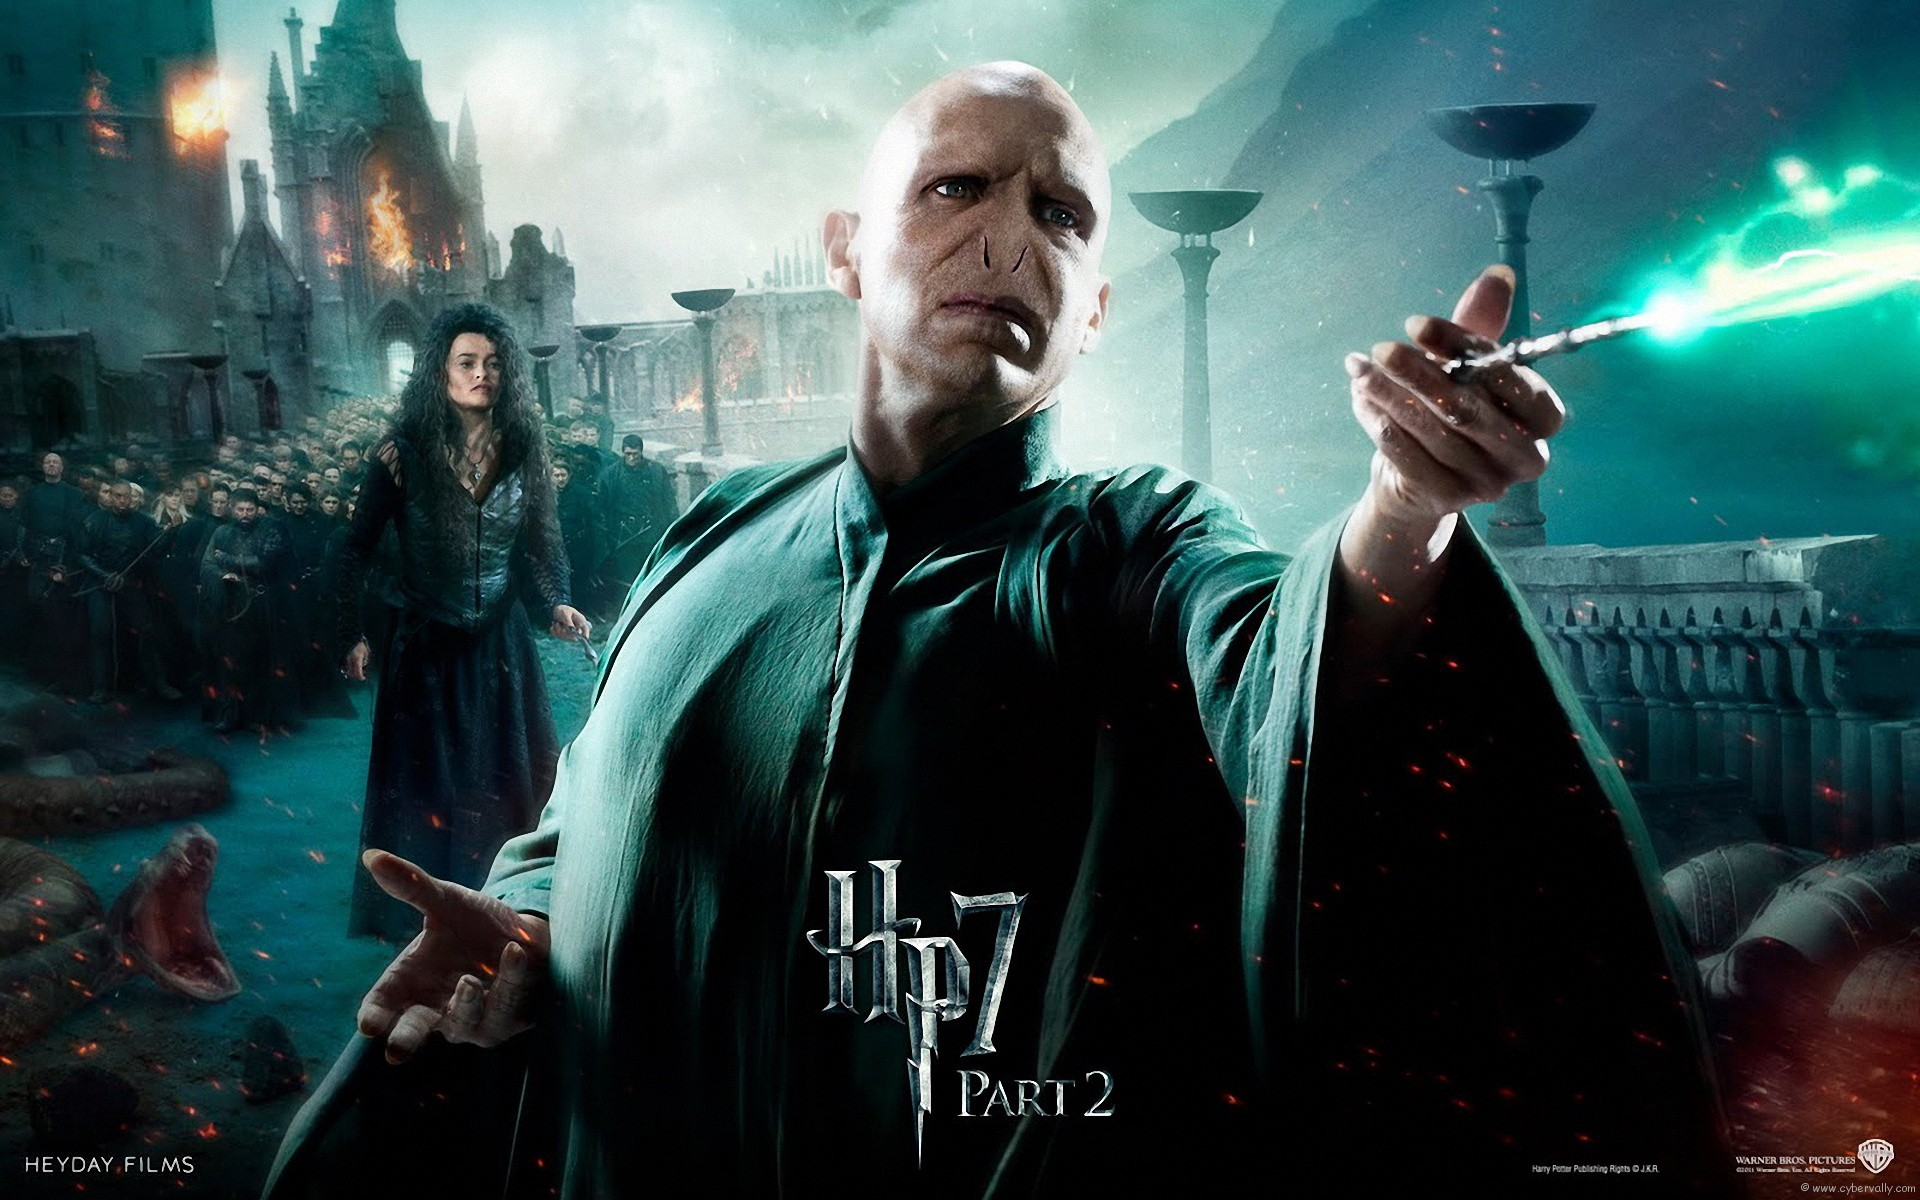 Harry Potter And The Deathly Hallows Part 2 Wallpapers And